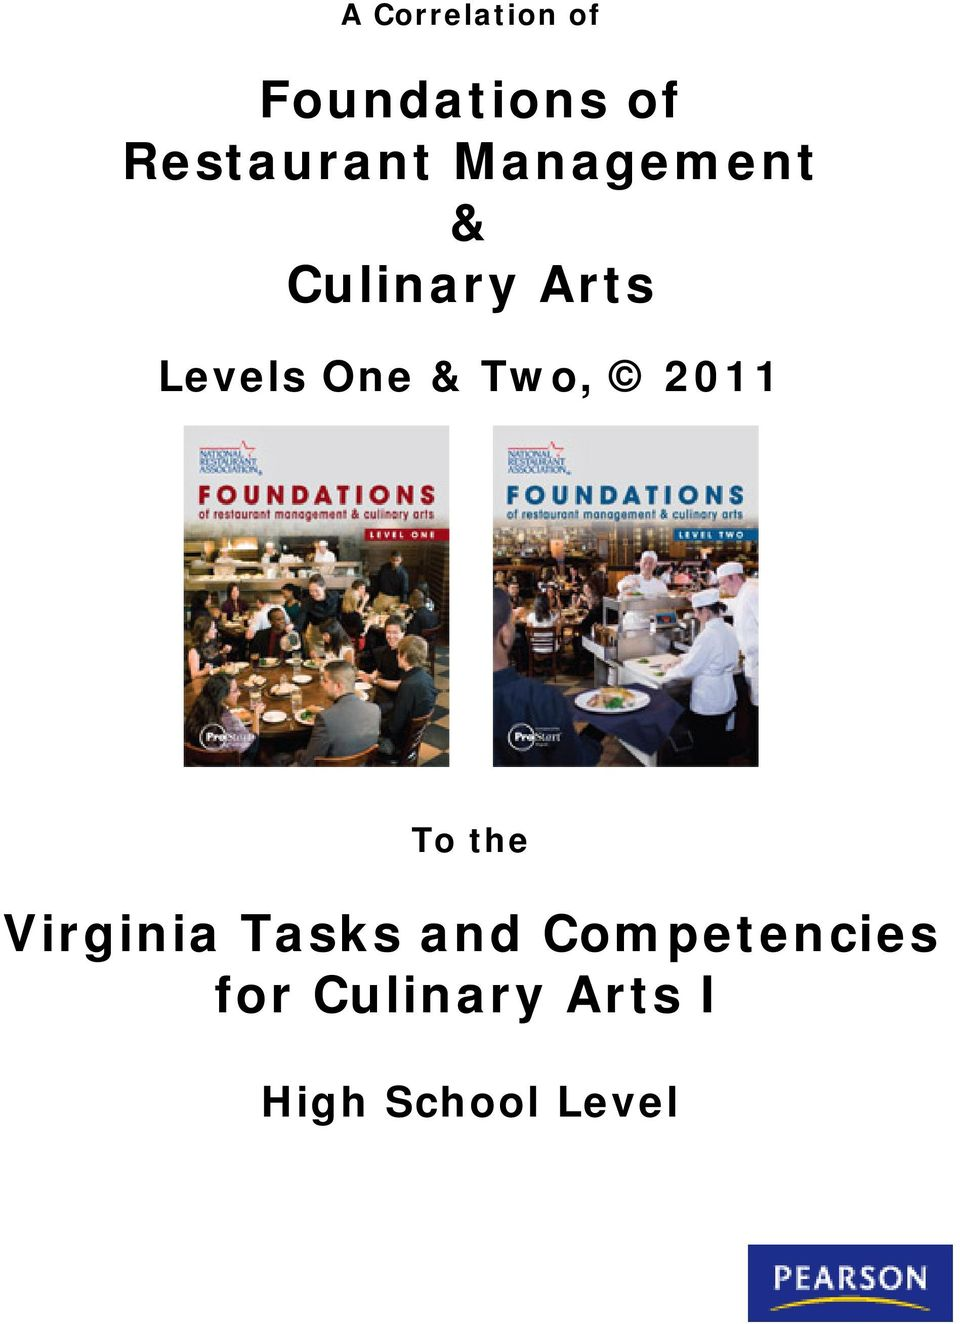 Levels One & Two, 2011 Virginia Tasks